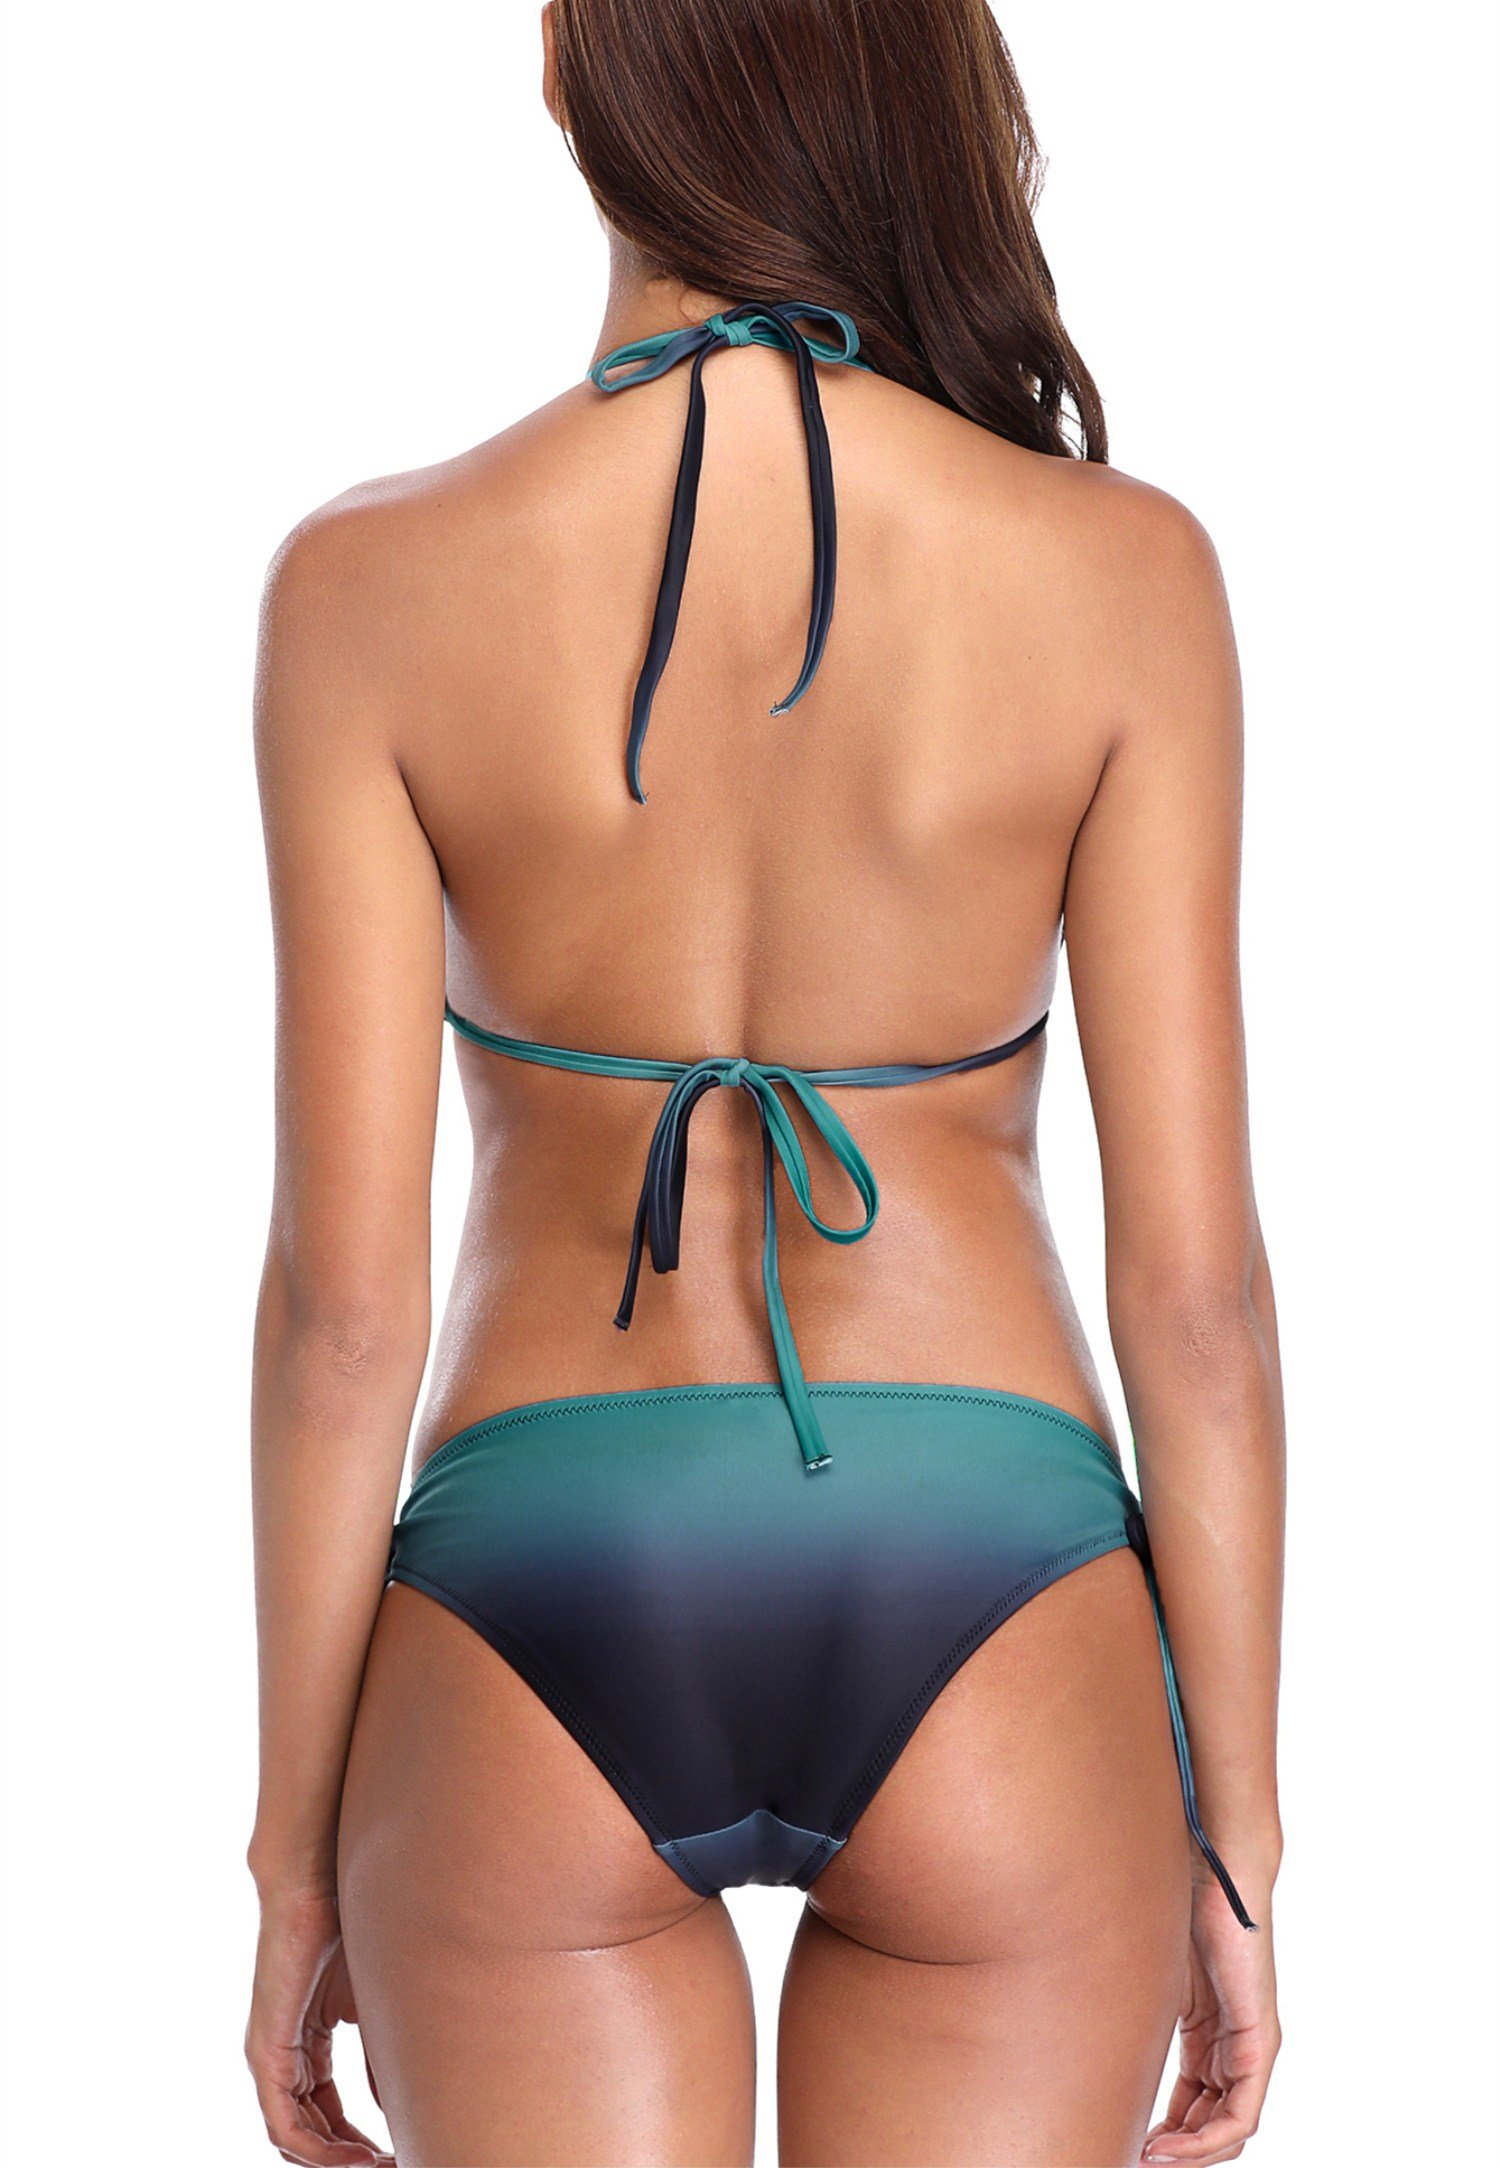 Charmleaks ladies two piece bikini bathing suit halter swimsuit green medium by CharmLeaks (Image #3)